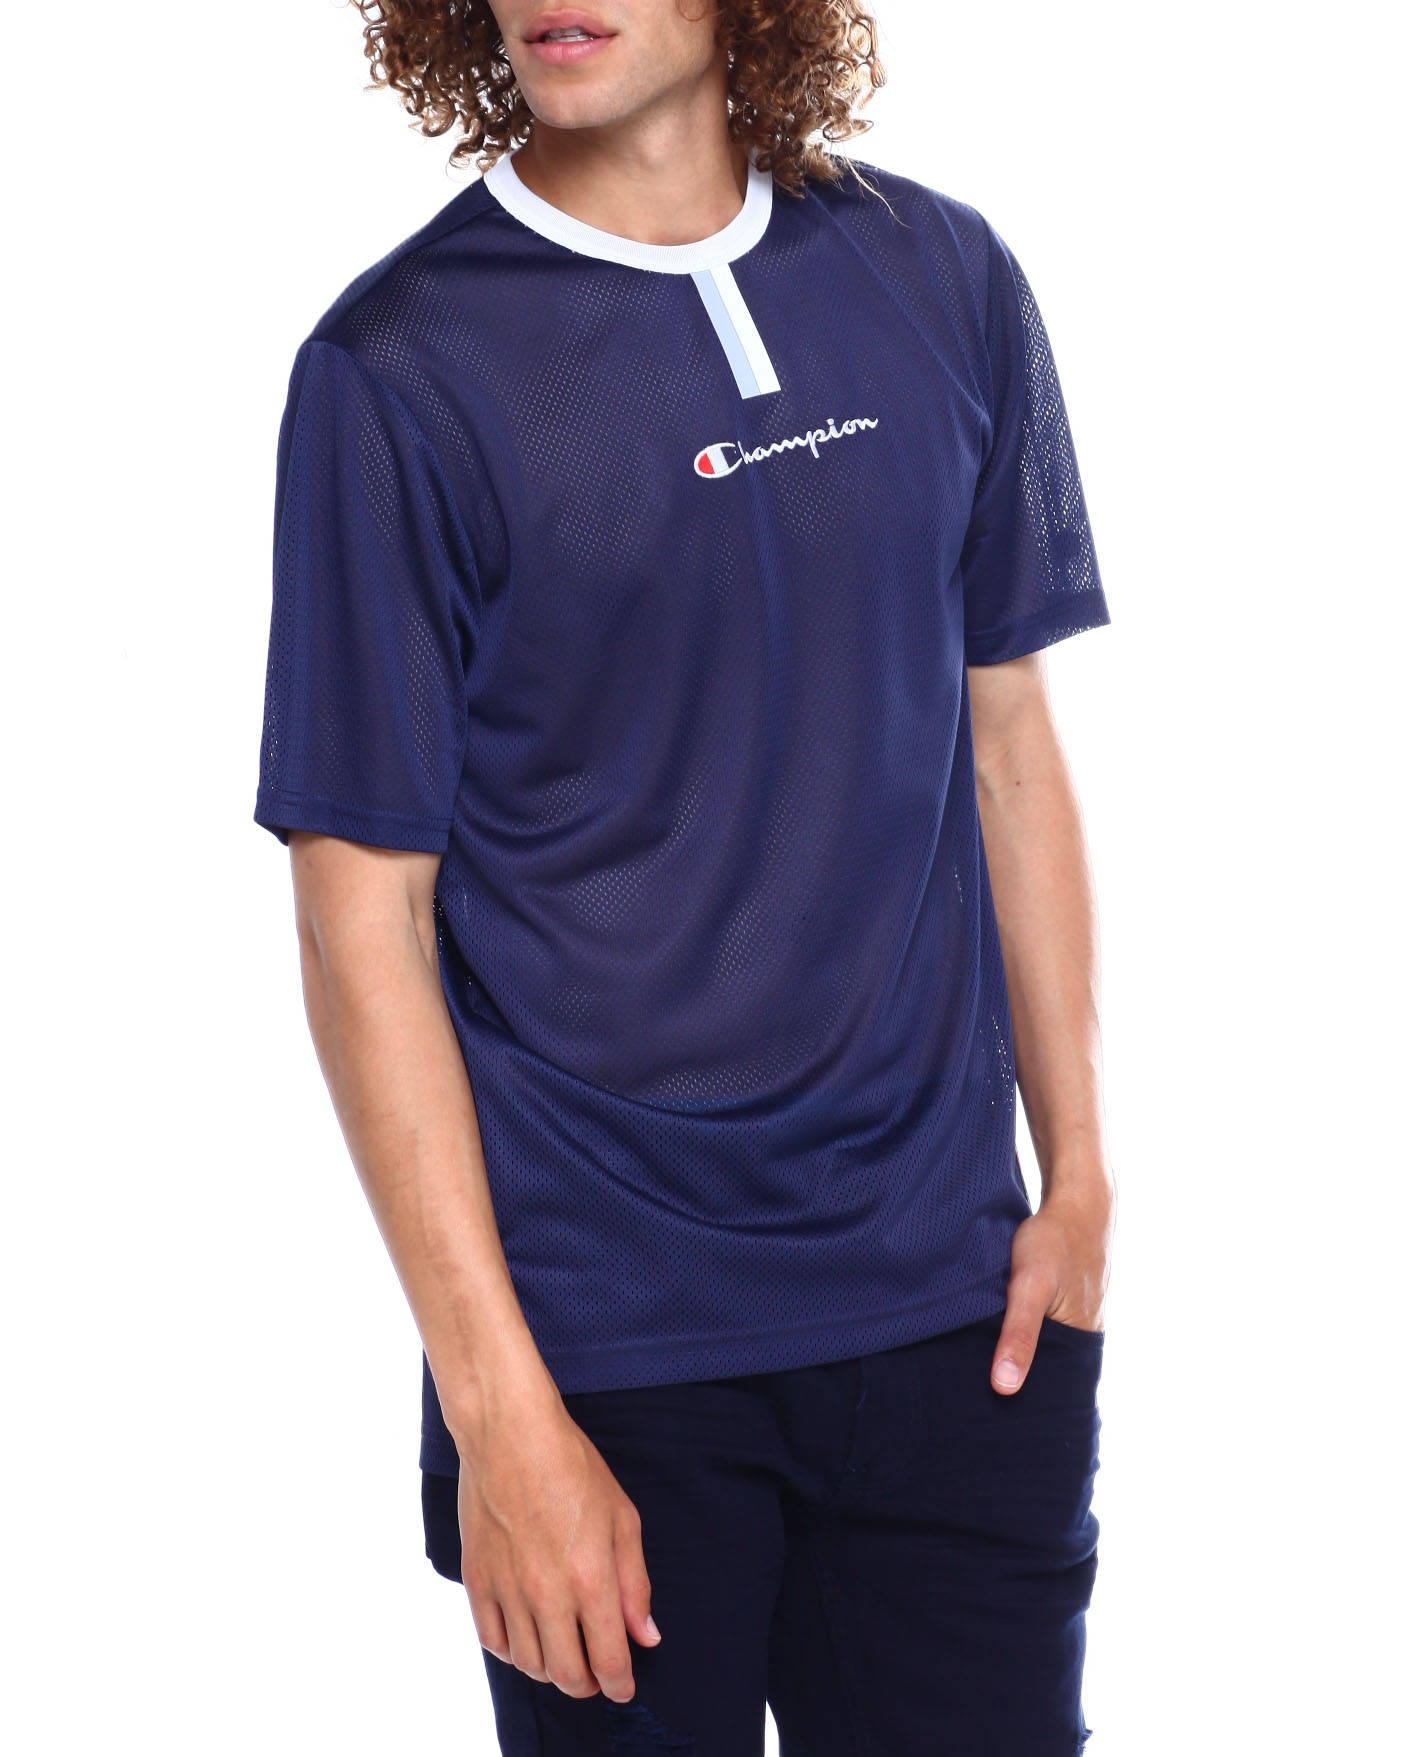 9f14f69e7da3 Buy YC TEE Men's Shirts from Champion. Find Champion fashion & more ...